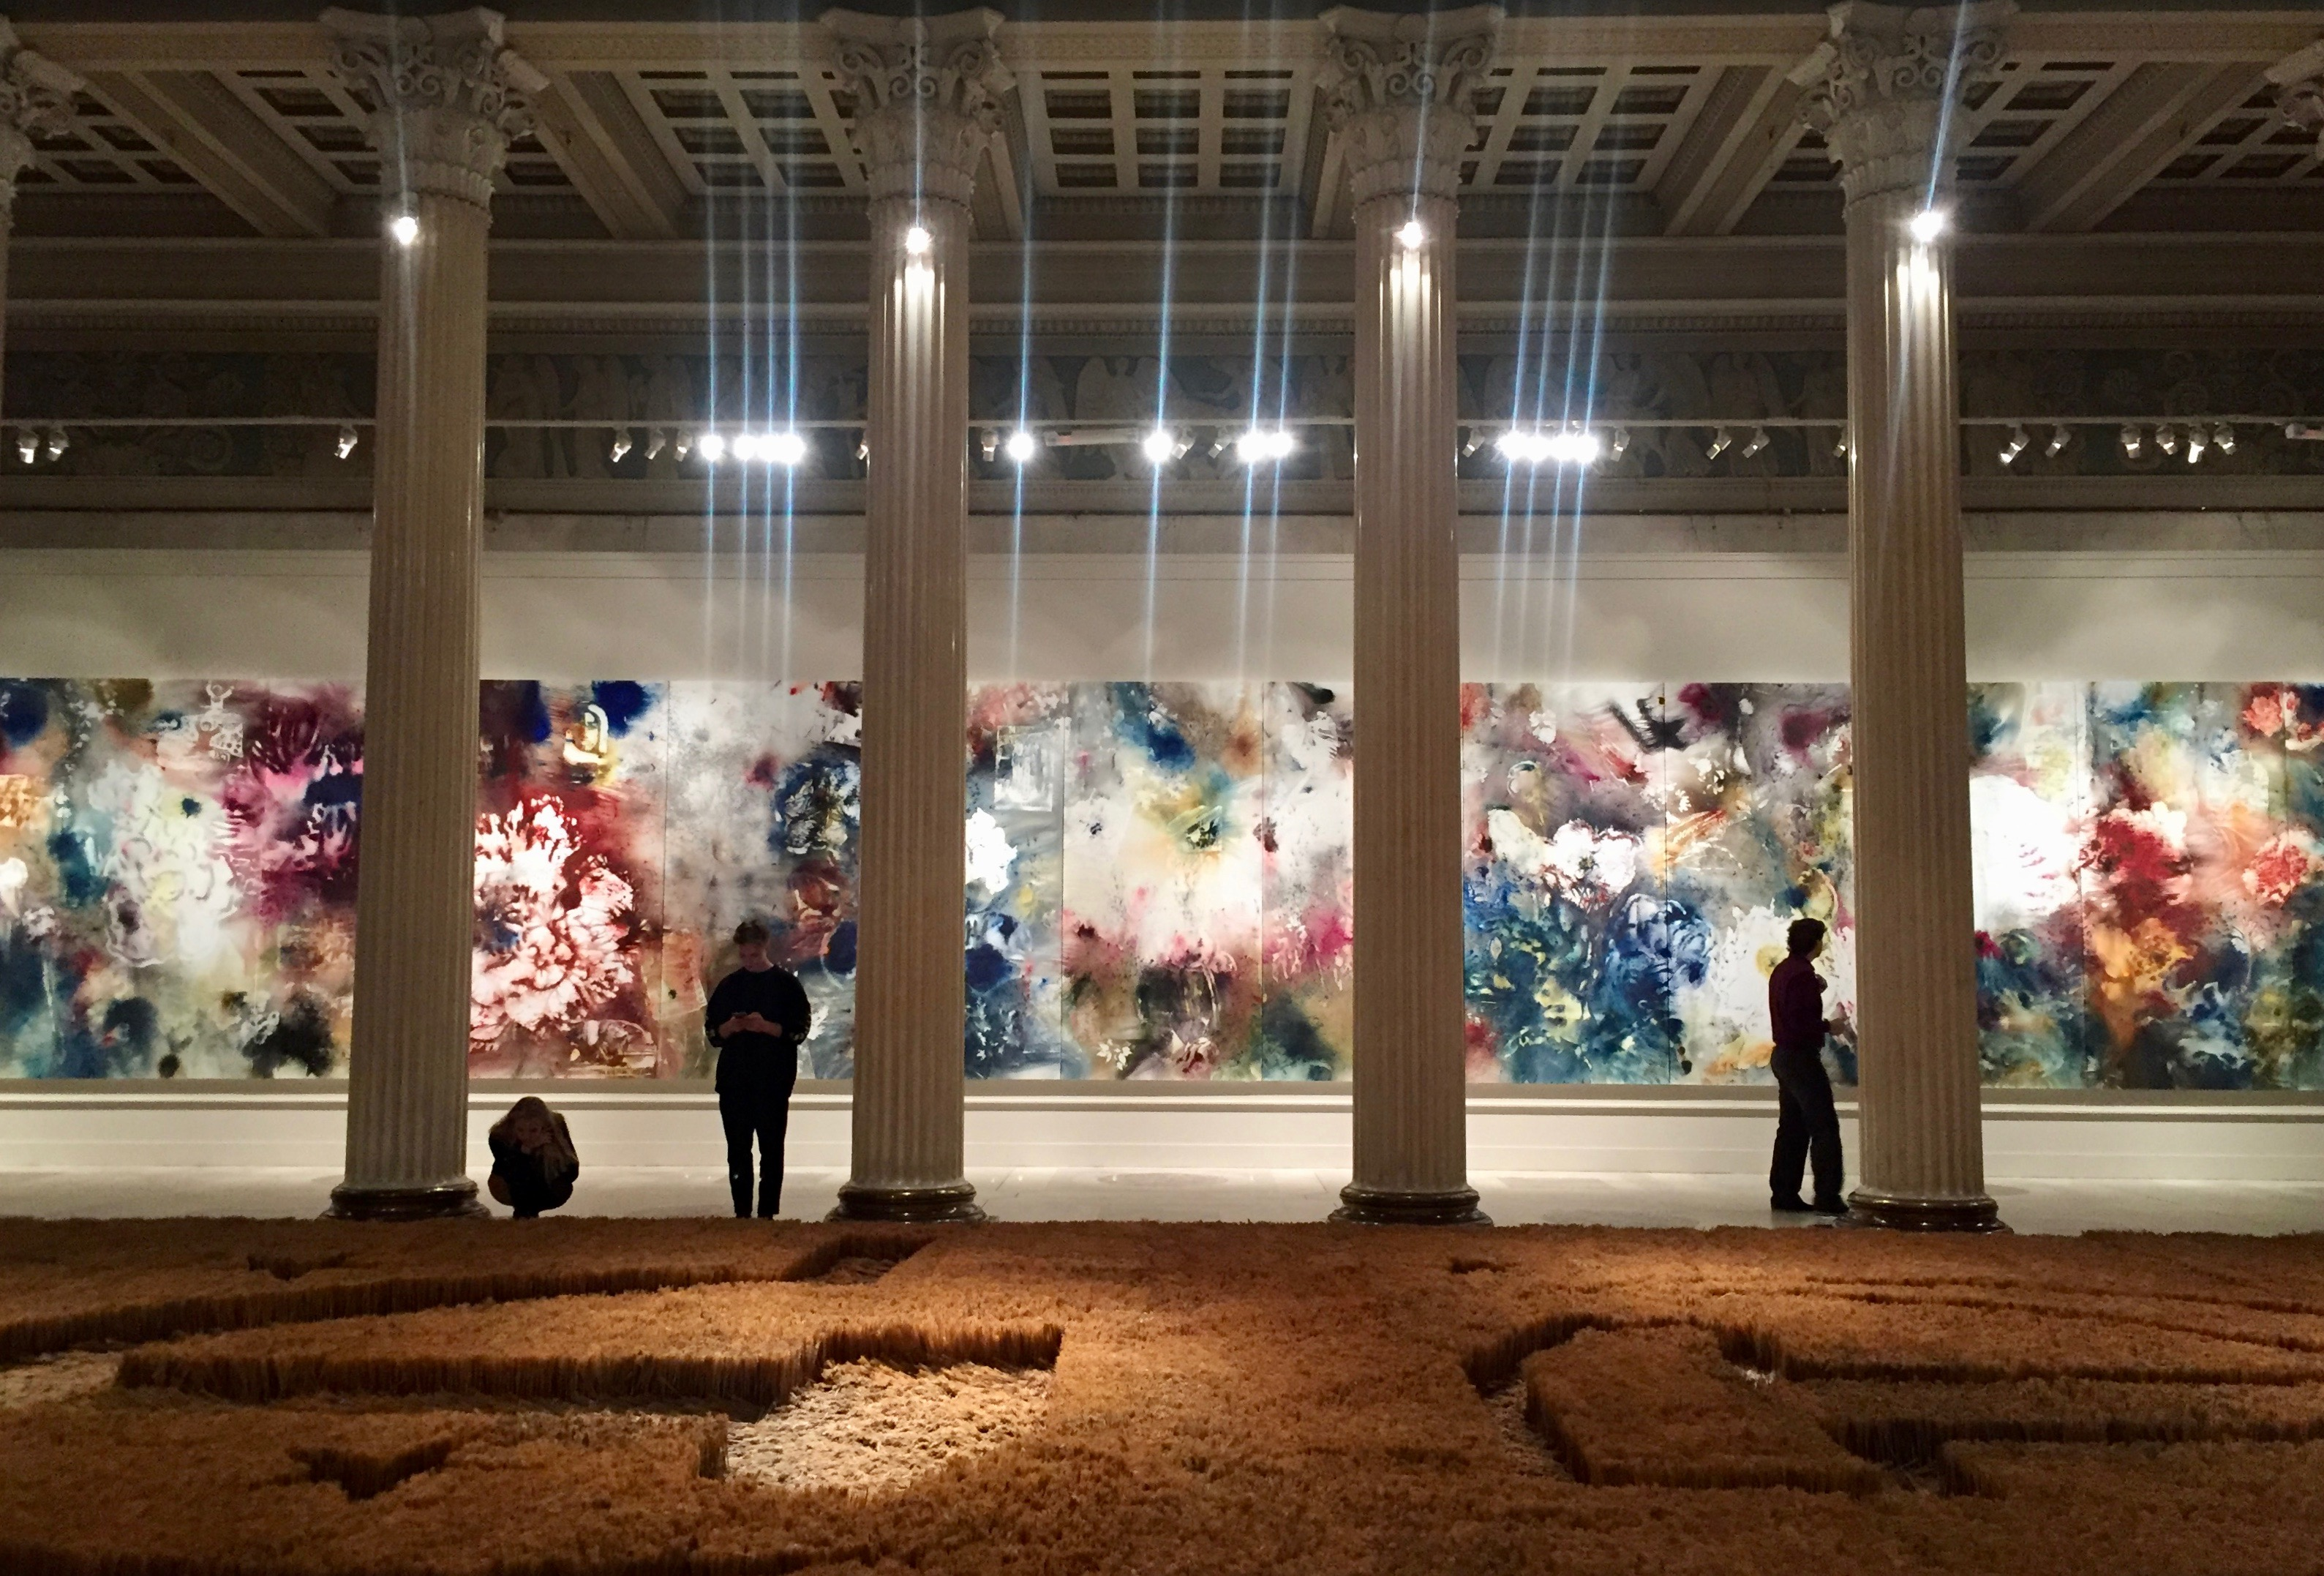 Installation <i>Garden</i> by Cai Guo-Qiang, Pushkin State Museum of Fine Arts